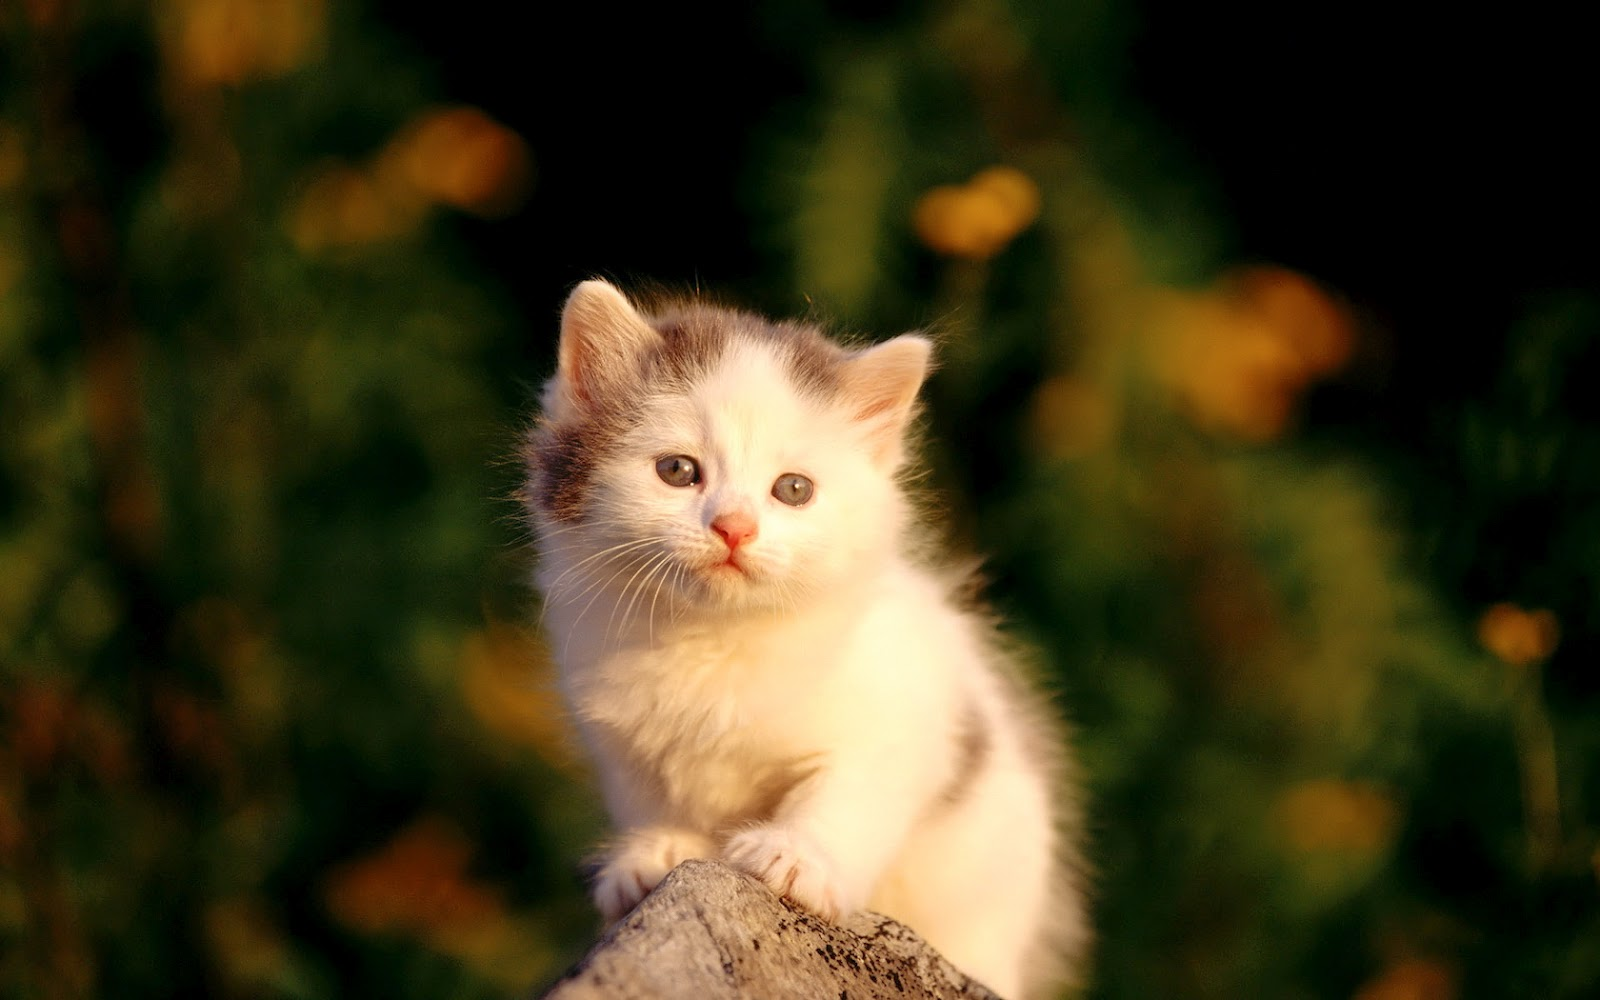 Cute Baby Cats Wallpapers - Wallpaper Cave |Cute Cat Backgrounds